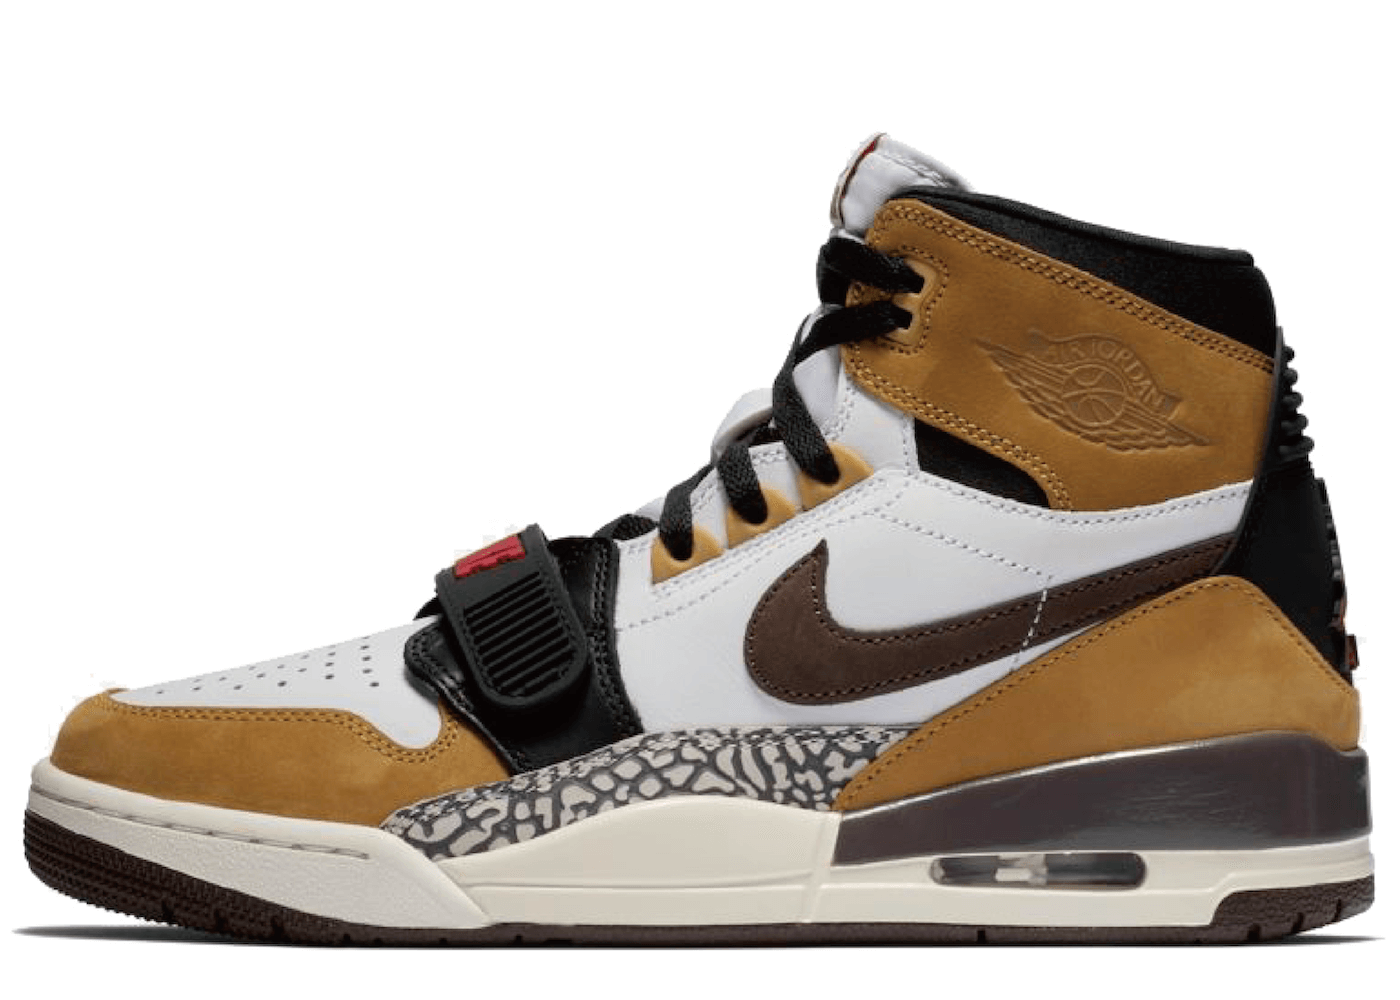 Nike Air Jordan Legacy 312 Wheat Varsity Redの写真